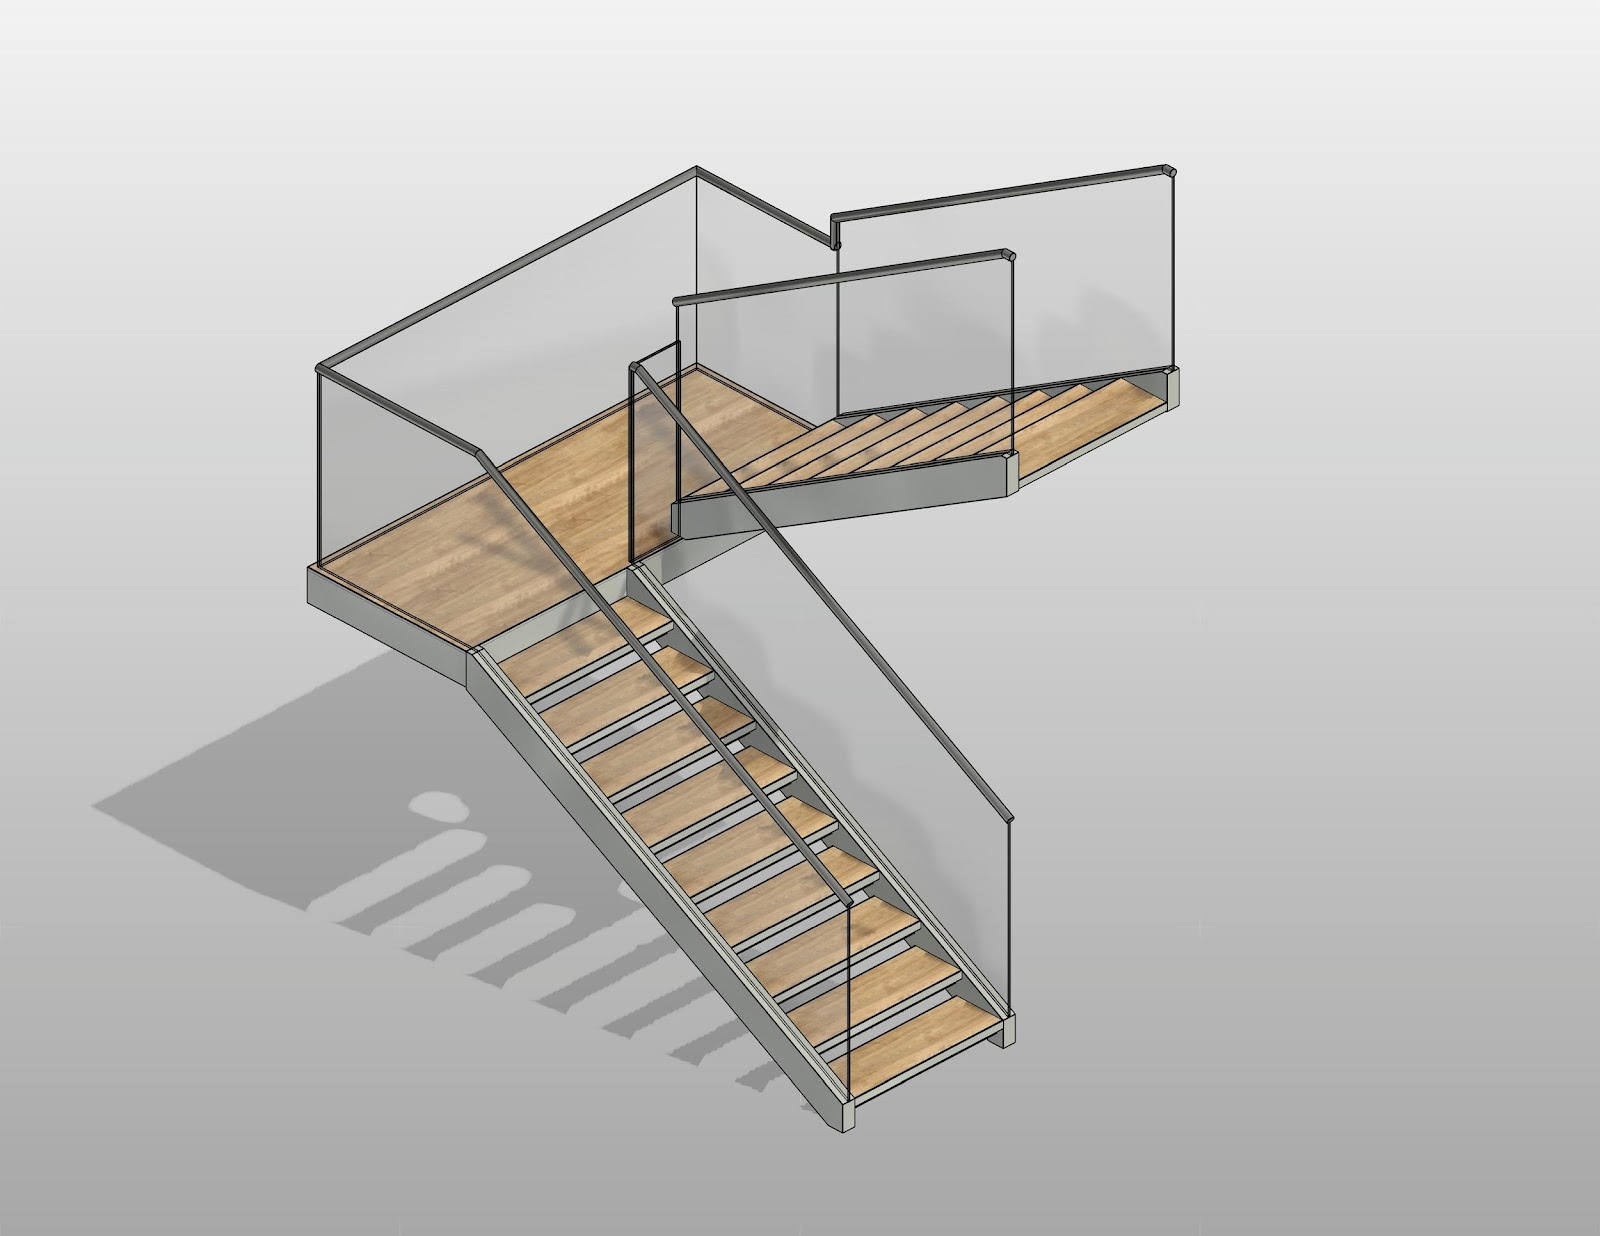 STAIR CALCULATION